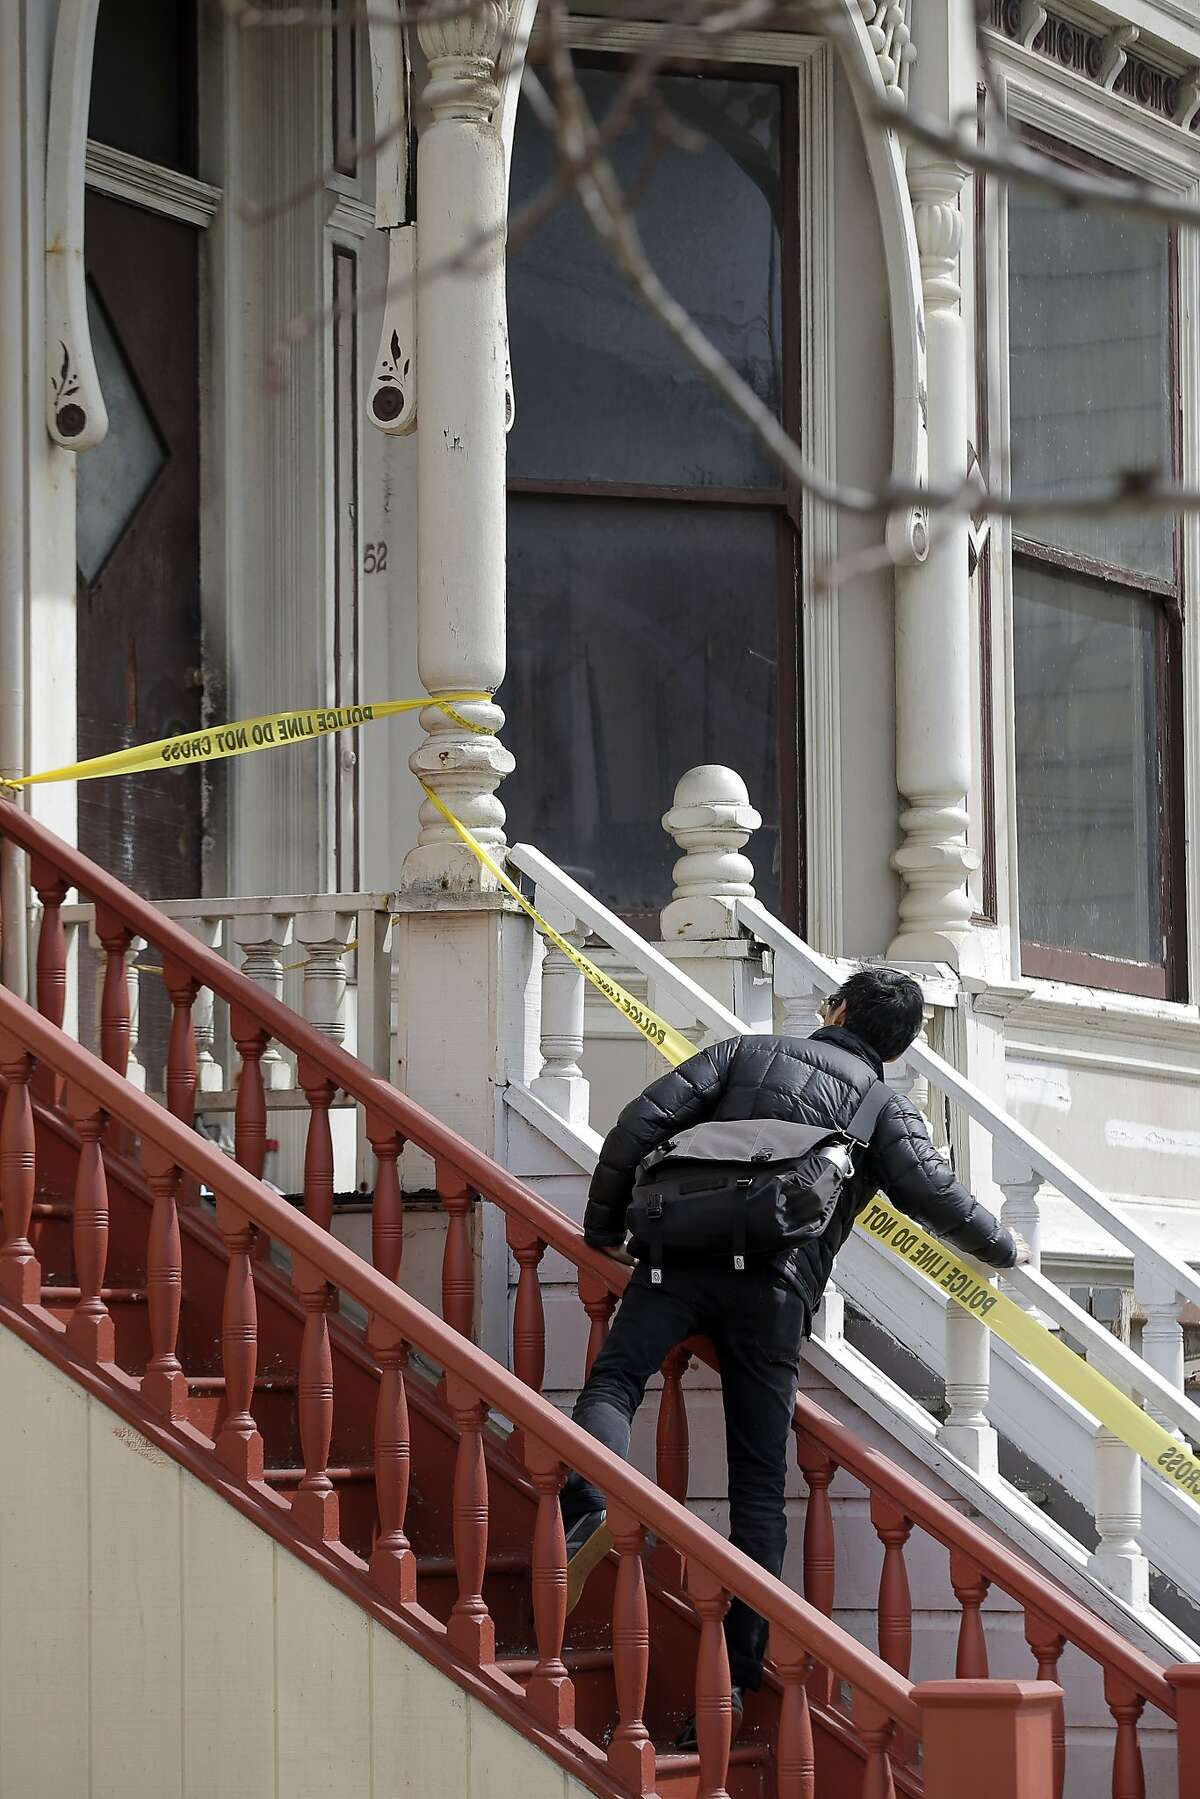 San Francisco Supervisor Eric Mar tries to look into a home on 4th Avenue on Sunday, April 5, 2015, in San Francisco , Calif. where a mummified body had been discovered the day before. Mar was looking for comments from neighbors on how the city could prevent the spread of vermin and spiders as the home is emptied and to provide services for mental health or senior care to stop such a thing from happening to other elders.